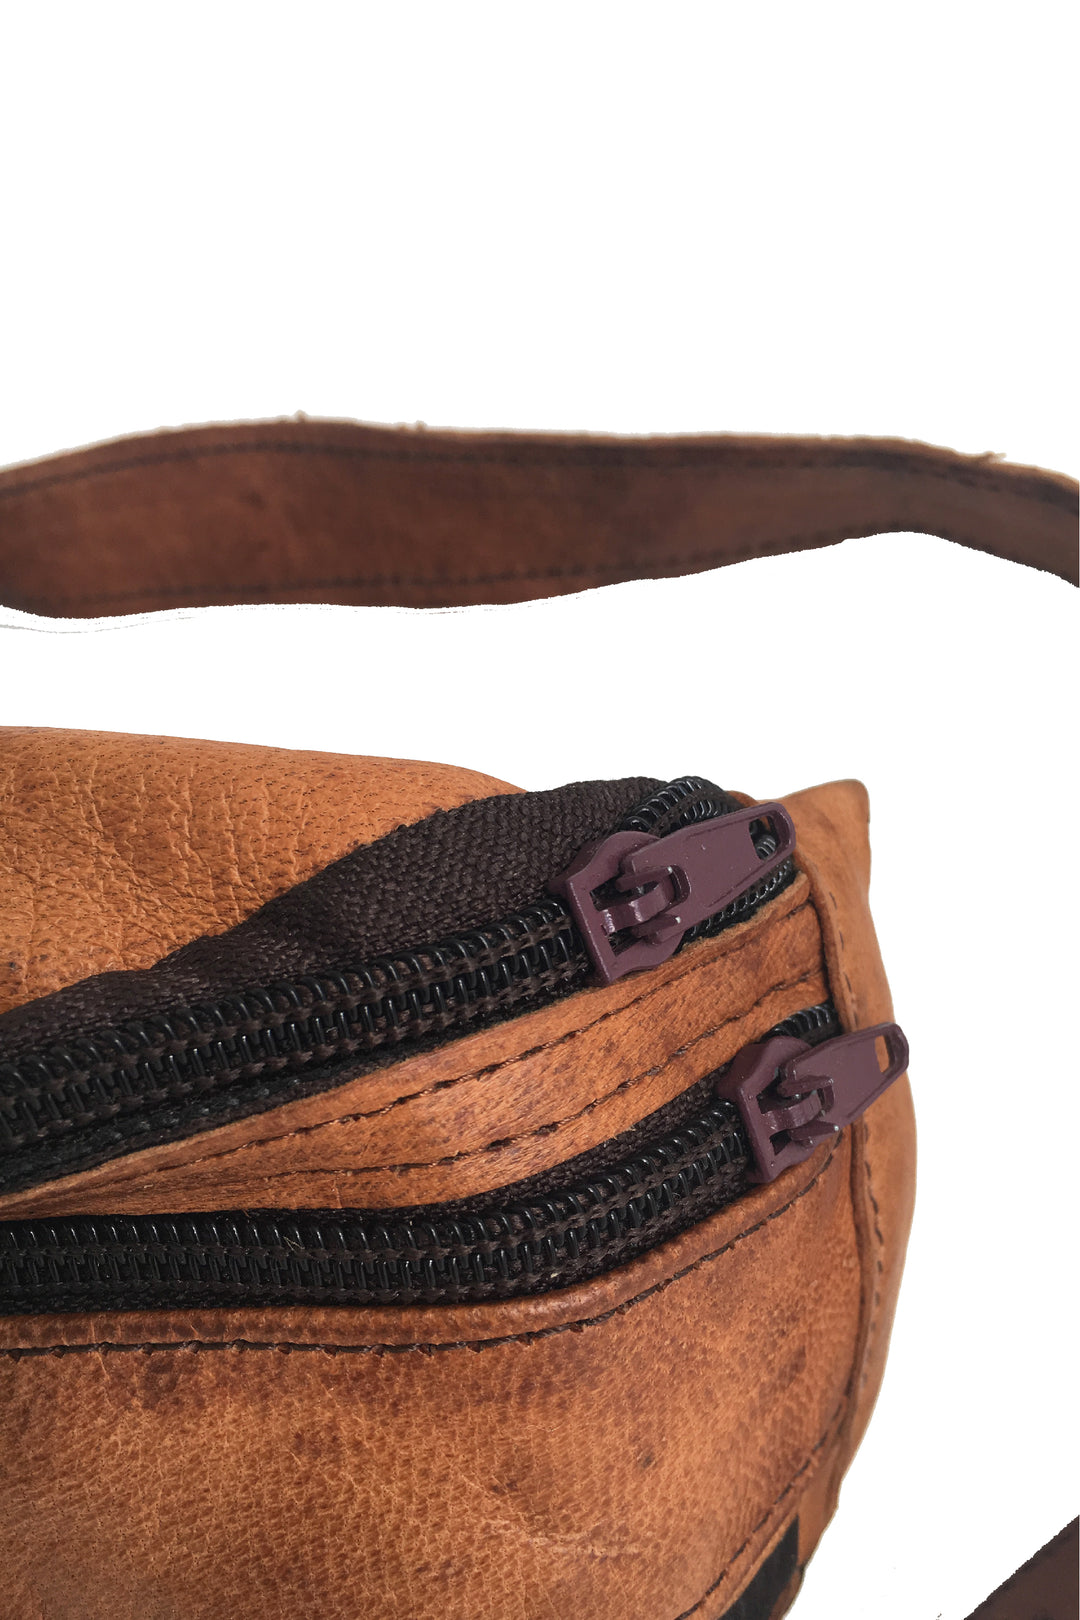 fez leather belt pack tan